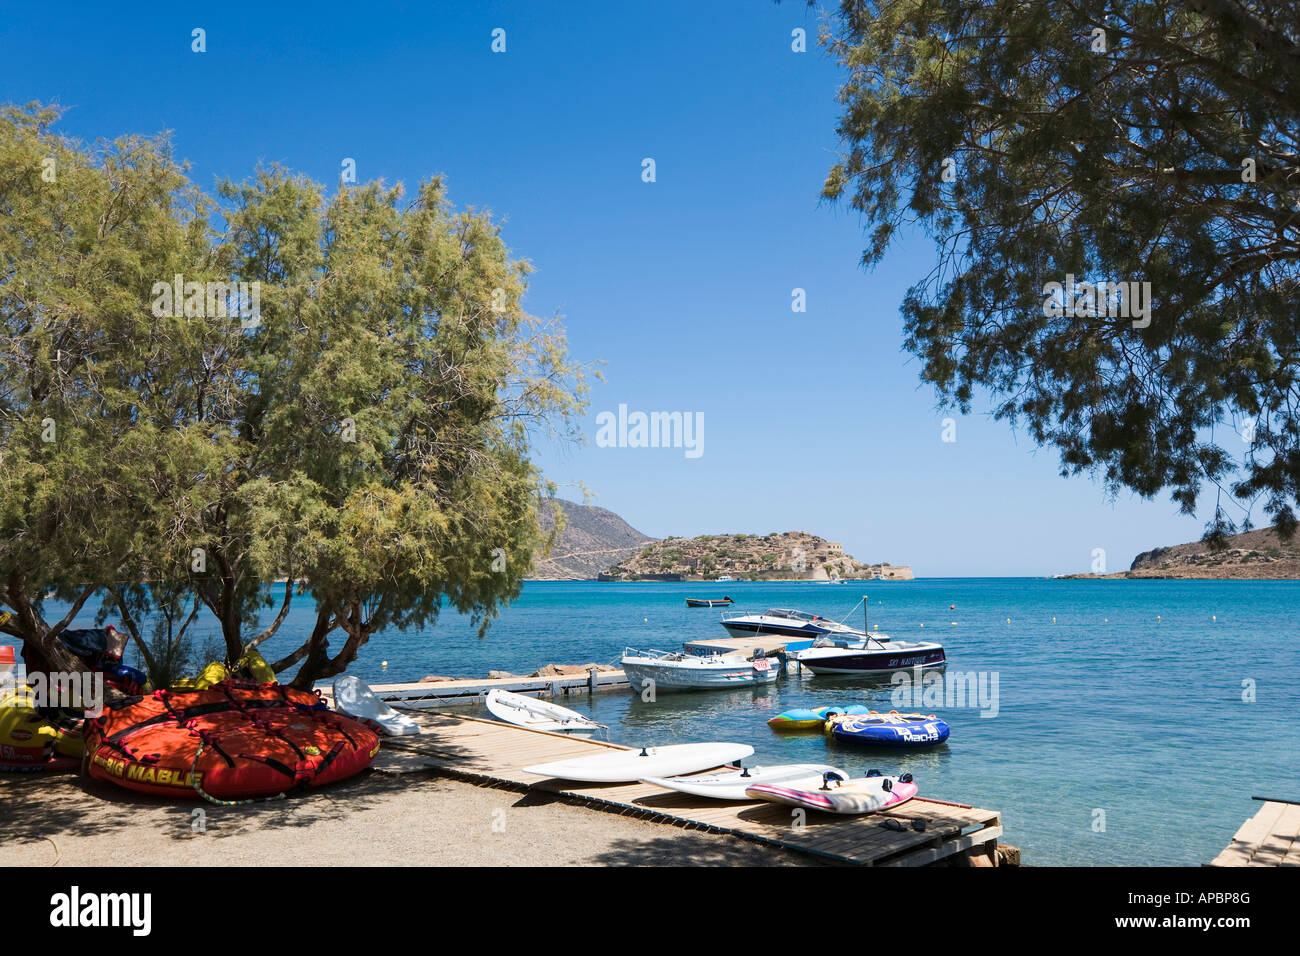 Watersports on Driros Beach with Spinalonga in the distance, Elounda, North East Coast, Crete, Greece - Stock Image